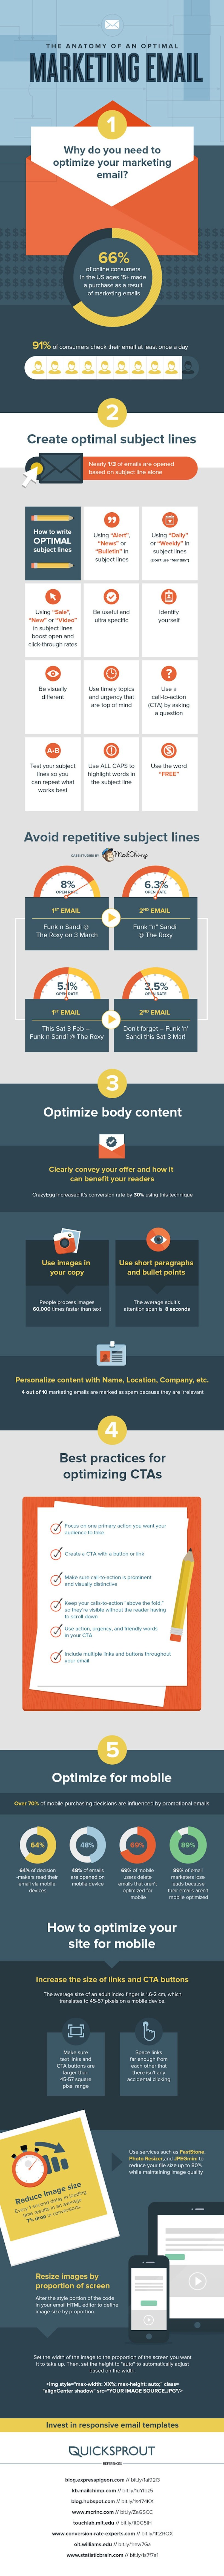 optimal-marketing-email-infographic.jpg